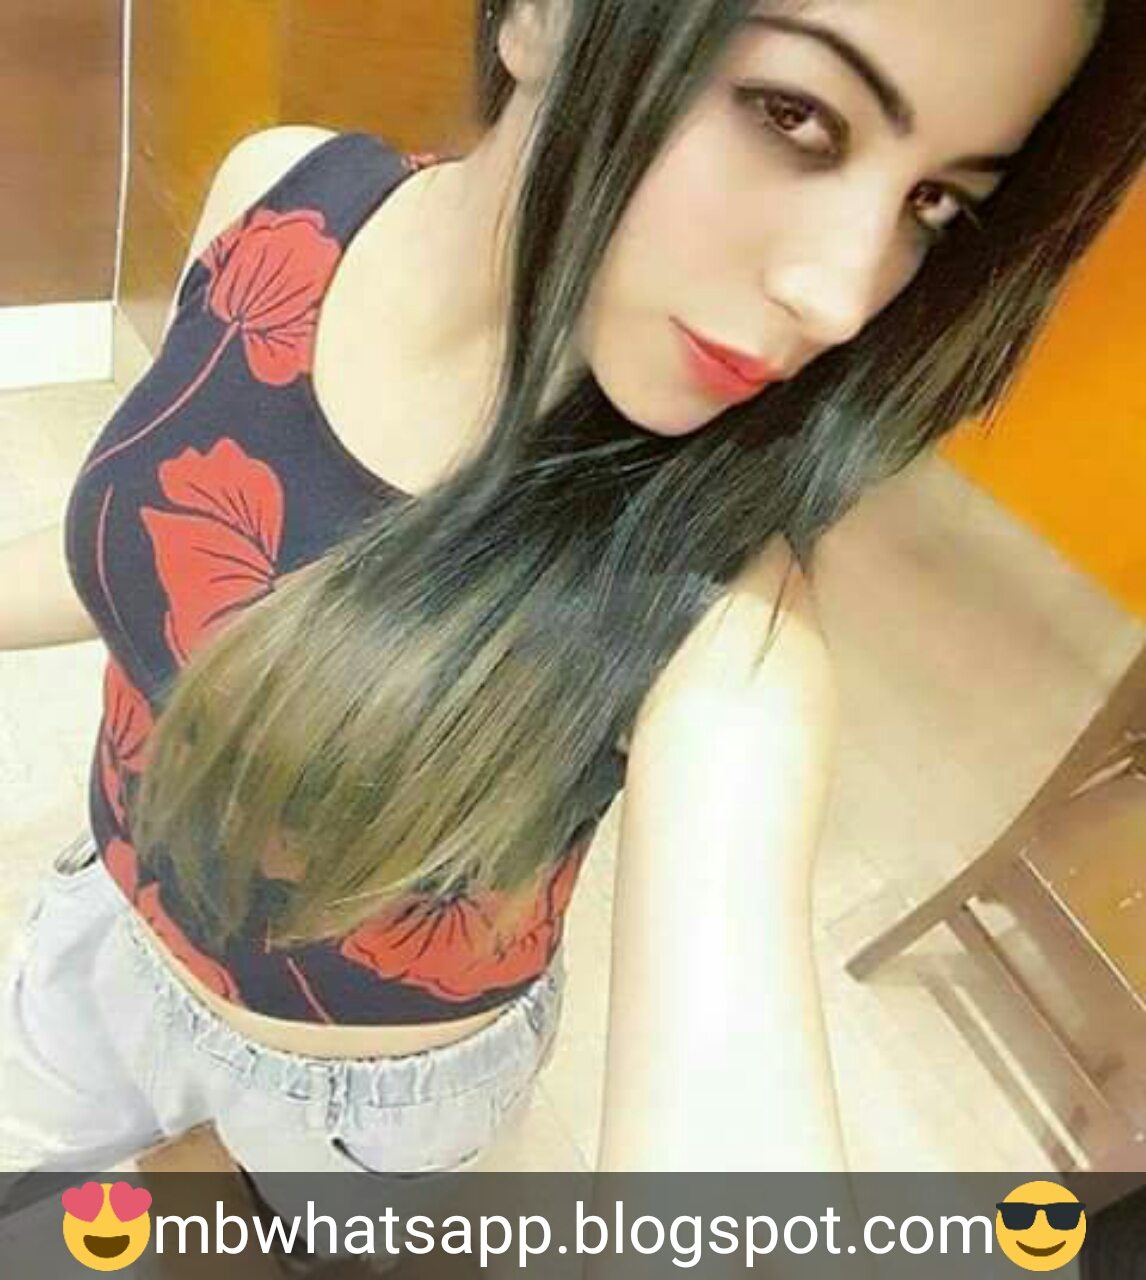 whatsapp number girls whatsapp numbers girls whatsapp numbers whatsapp girl number call girlfriend number 2018 whatsapp numbers lists